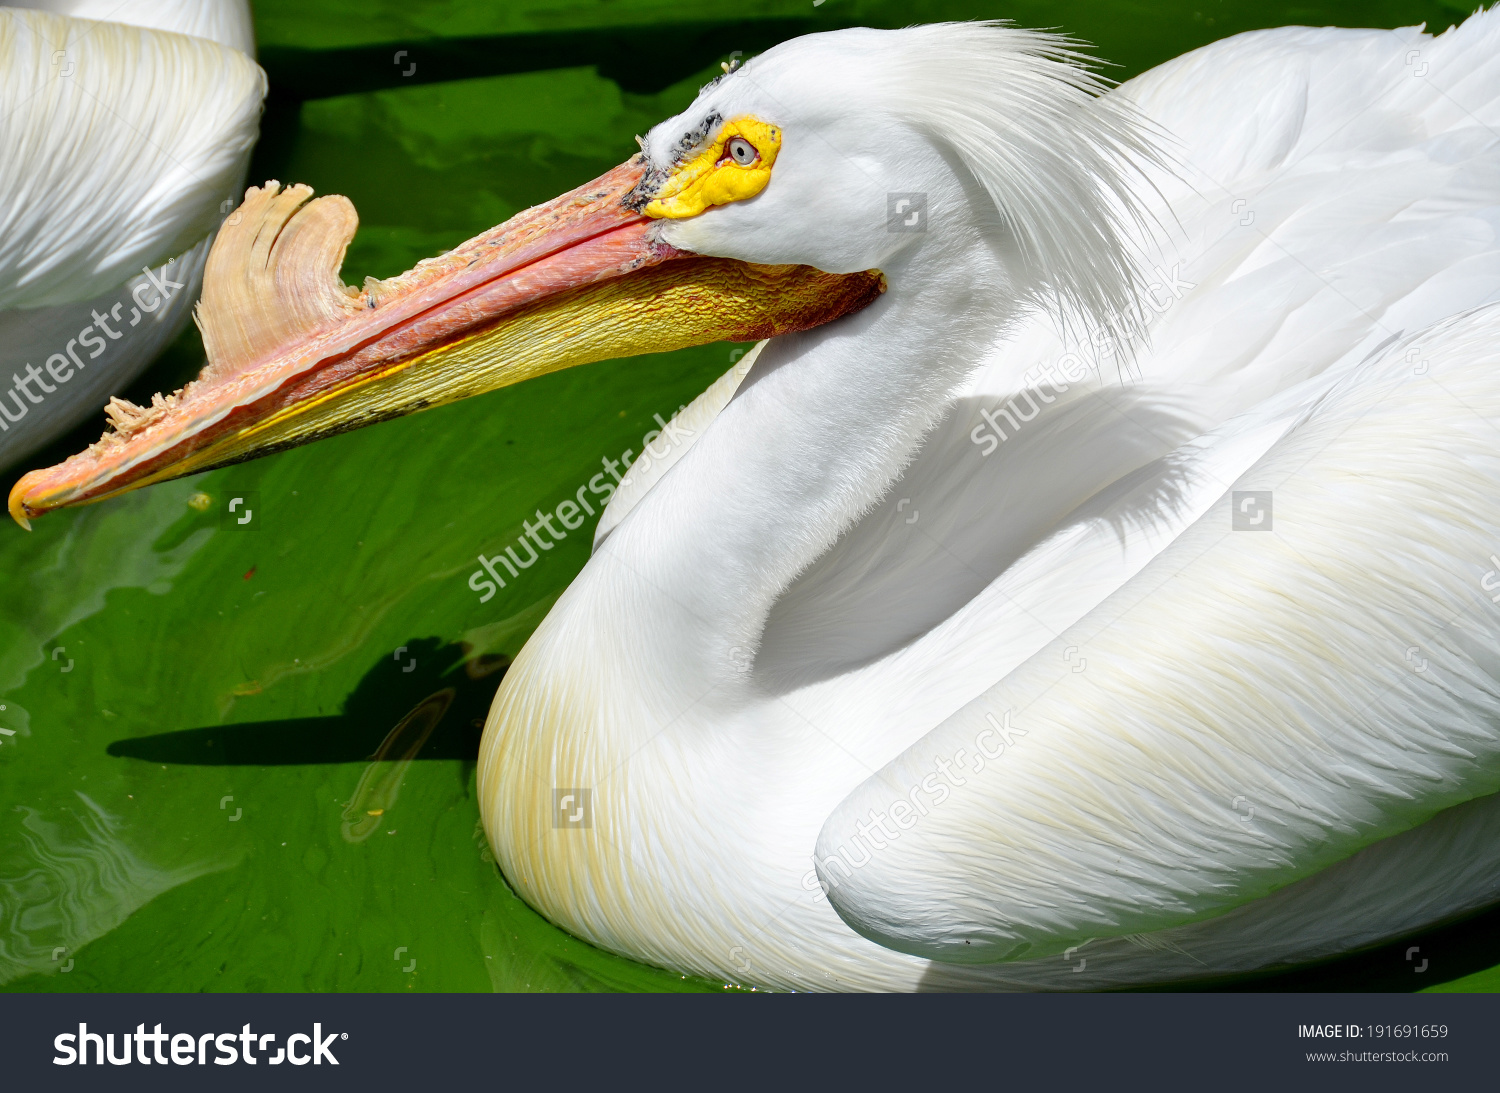 Pelicans Large Water Birds They Characterised Stock Photo.